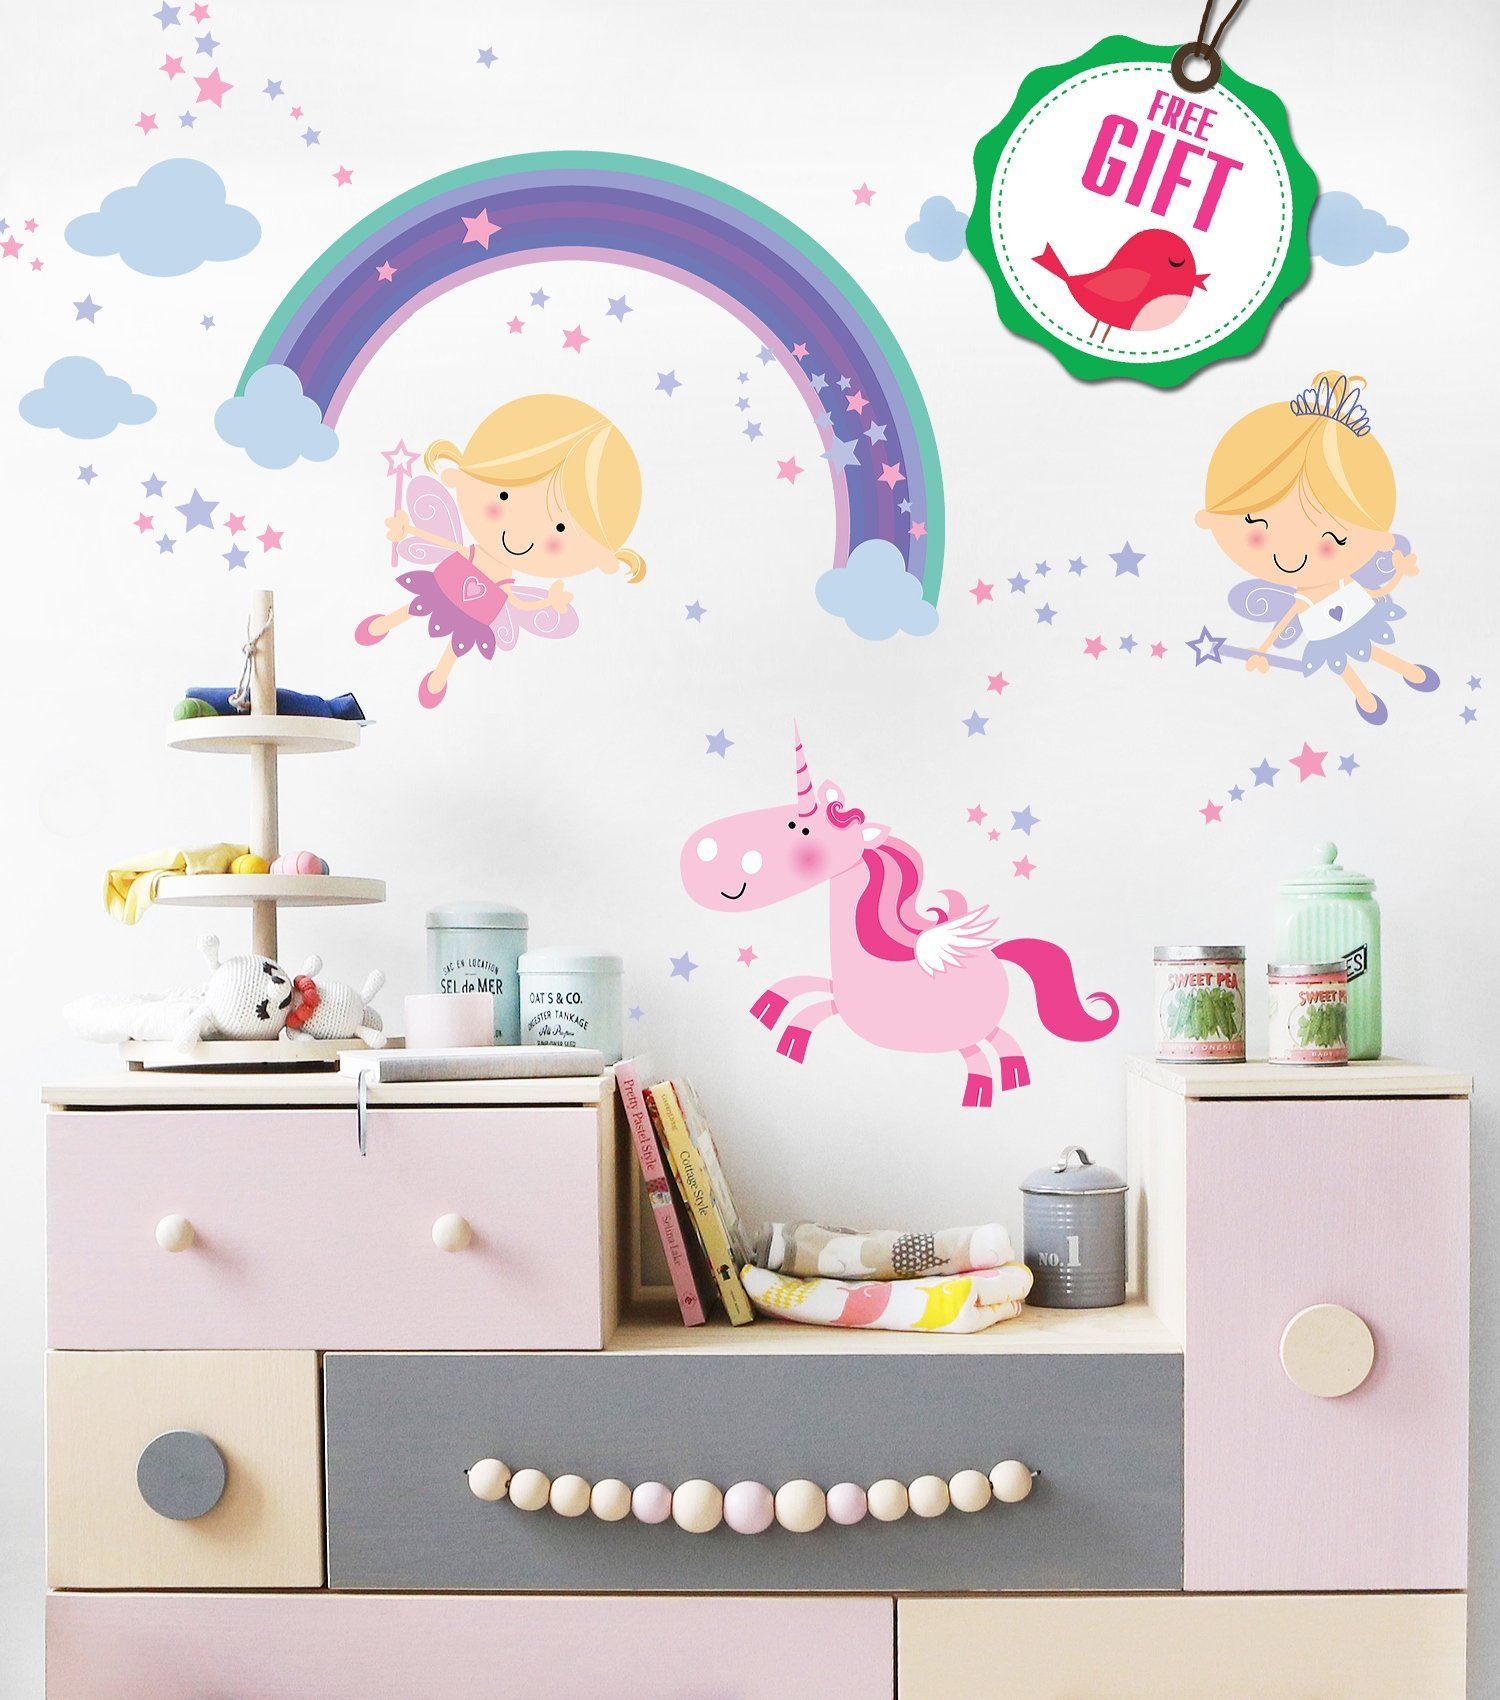 Girly Room Decor For Bedroom Amazon